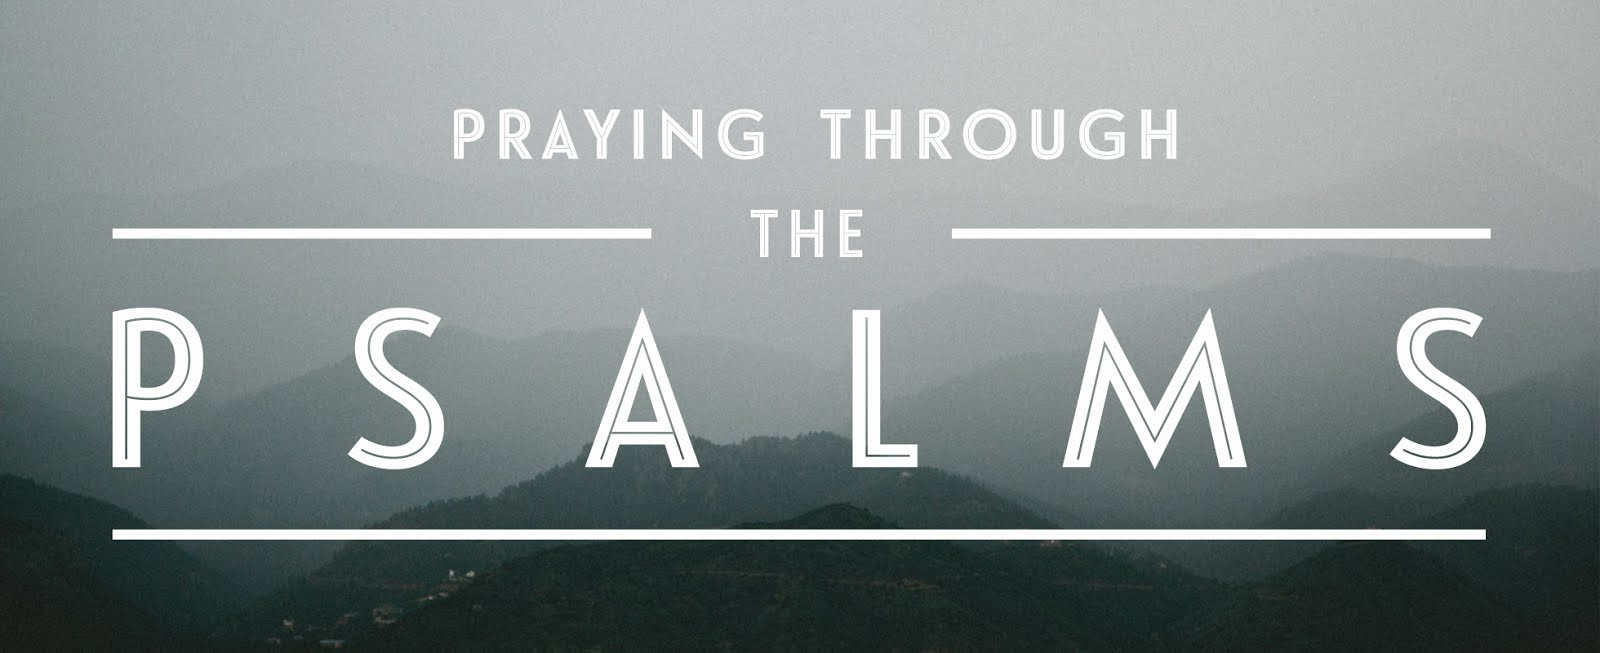 Praying Throught the Psalms